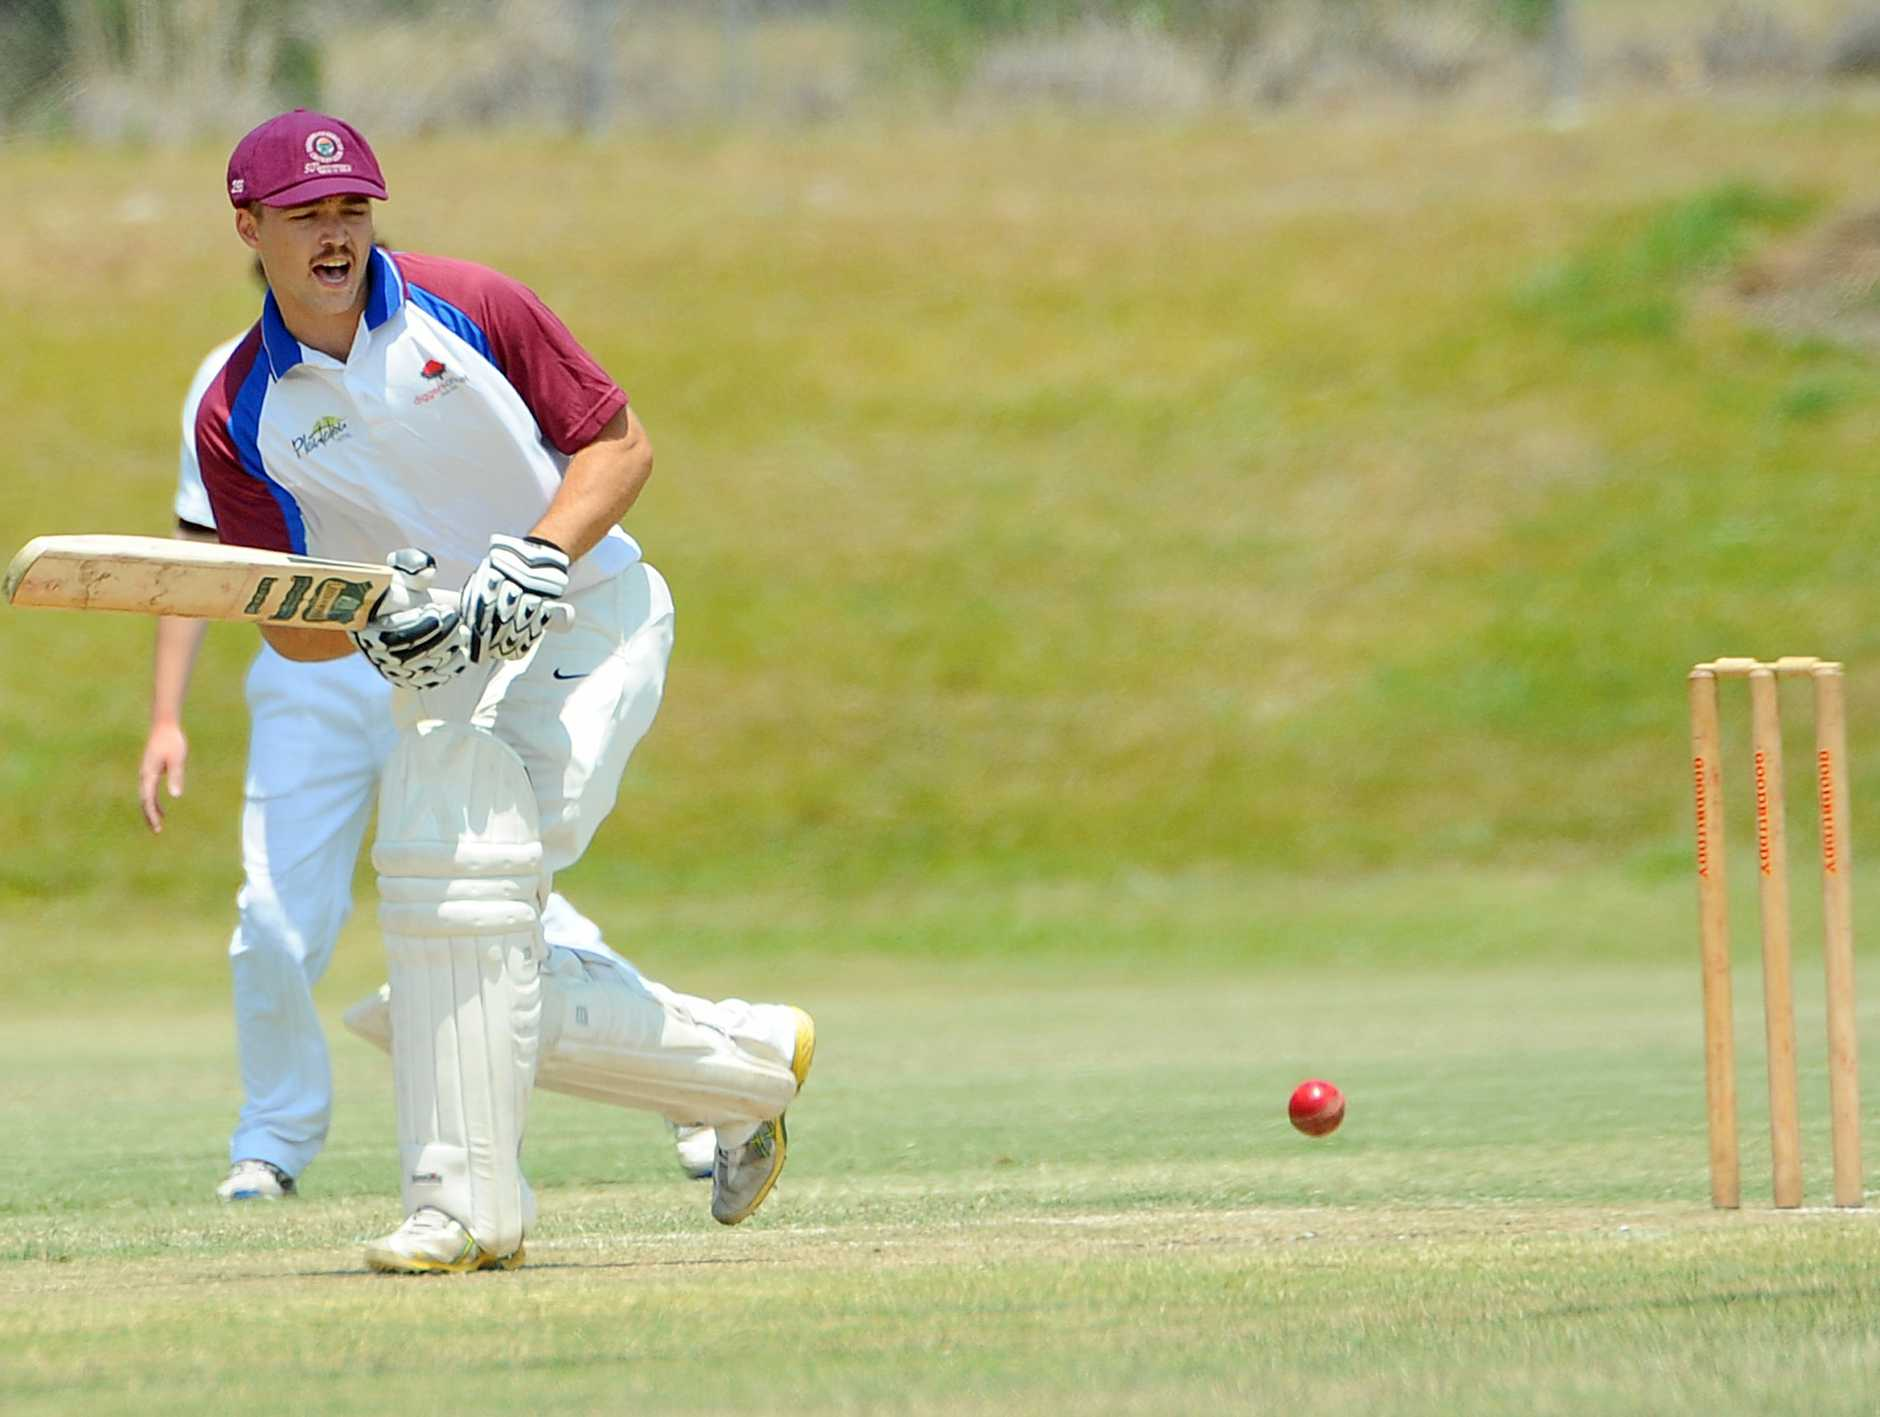 Diggers opener Alex Byrne looks happy with another delivery tucked safely away.